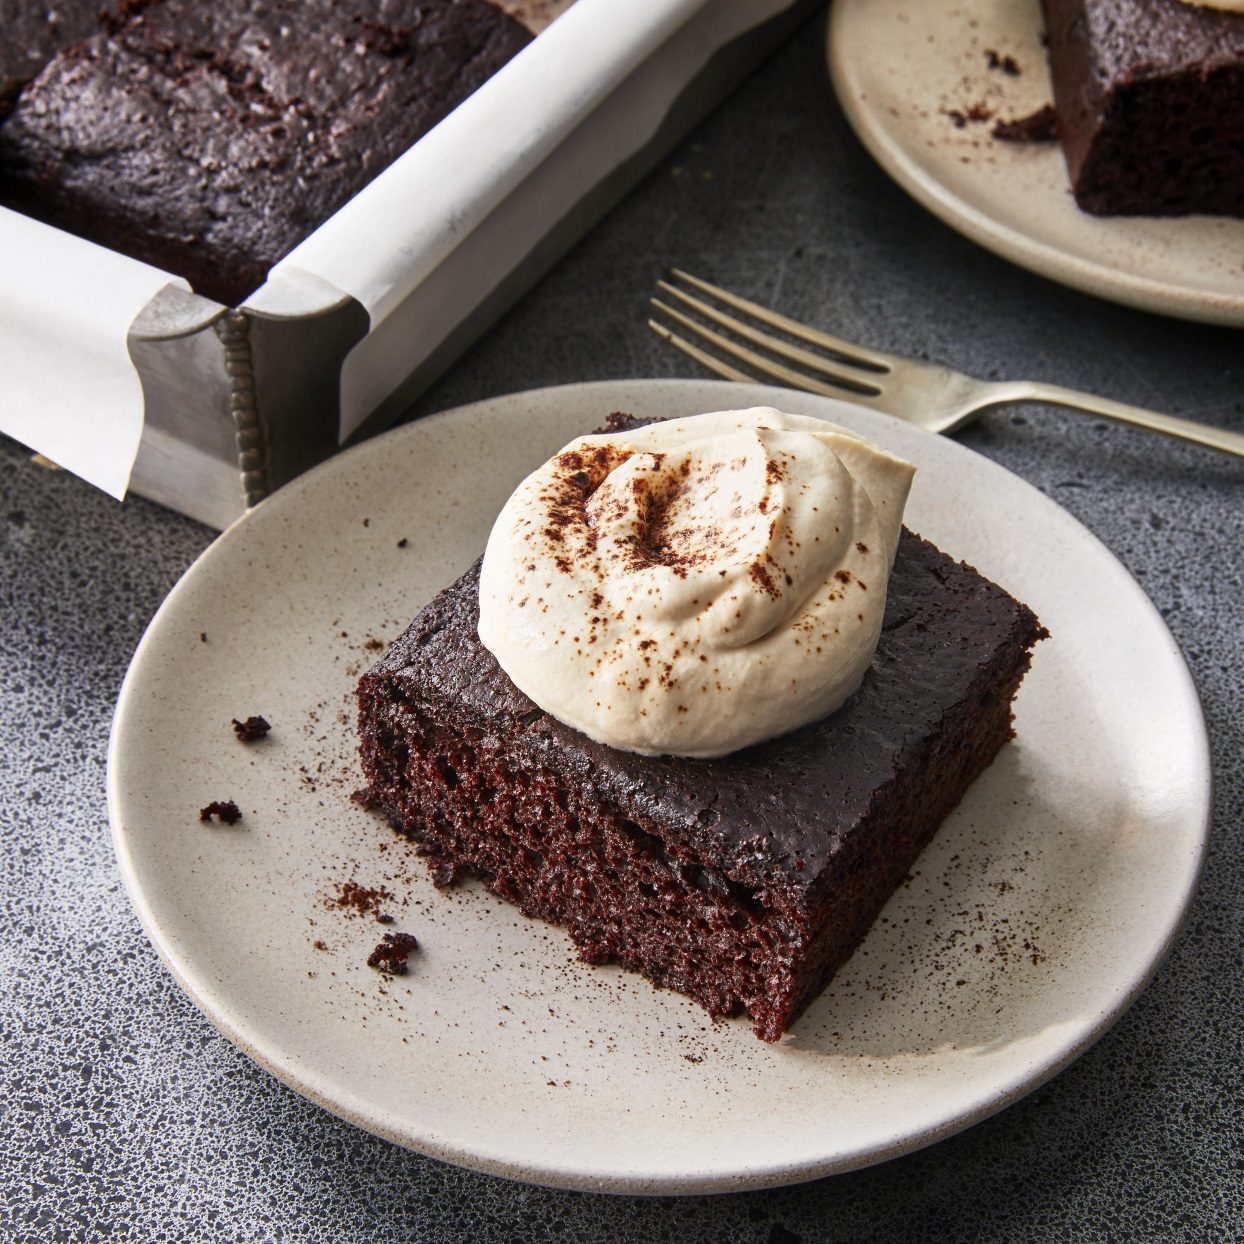 This Irish stout cake can't get any easier: everything is mixed in one bowl, poured into the cake pan and is in the oven in 15 minutes flat. Lining the cake pan with parchment paper makes removing the cake easy and helps with cleanup. After this rich chocolate cake has cooled, enjoy it with the espresso- and Irish whiskey-laced whipped cream topping. Source: EatingWell.com, January 2020